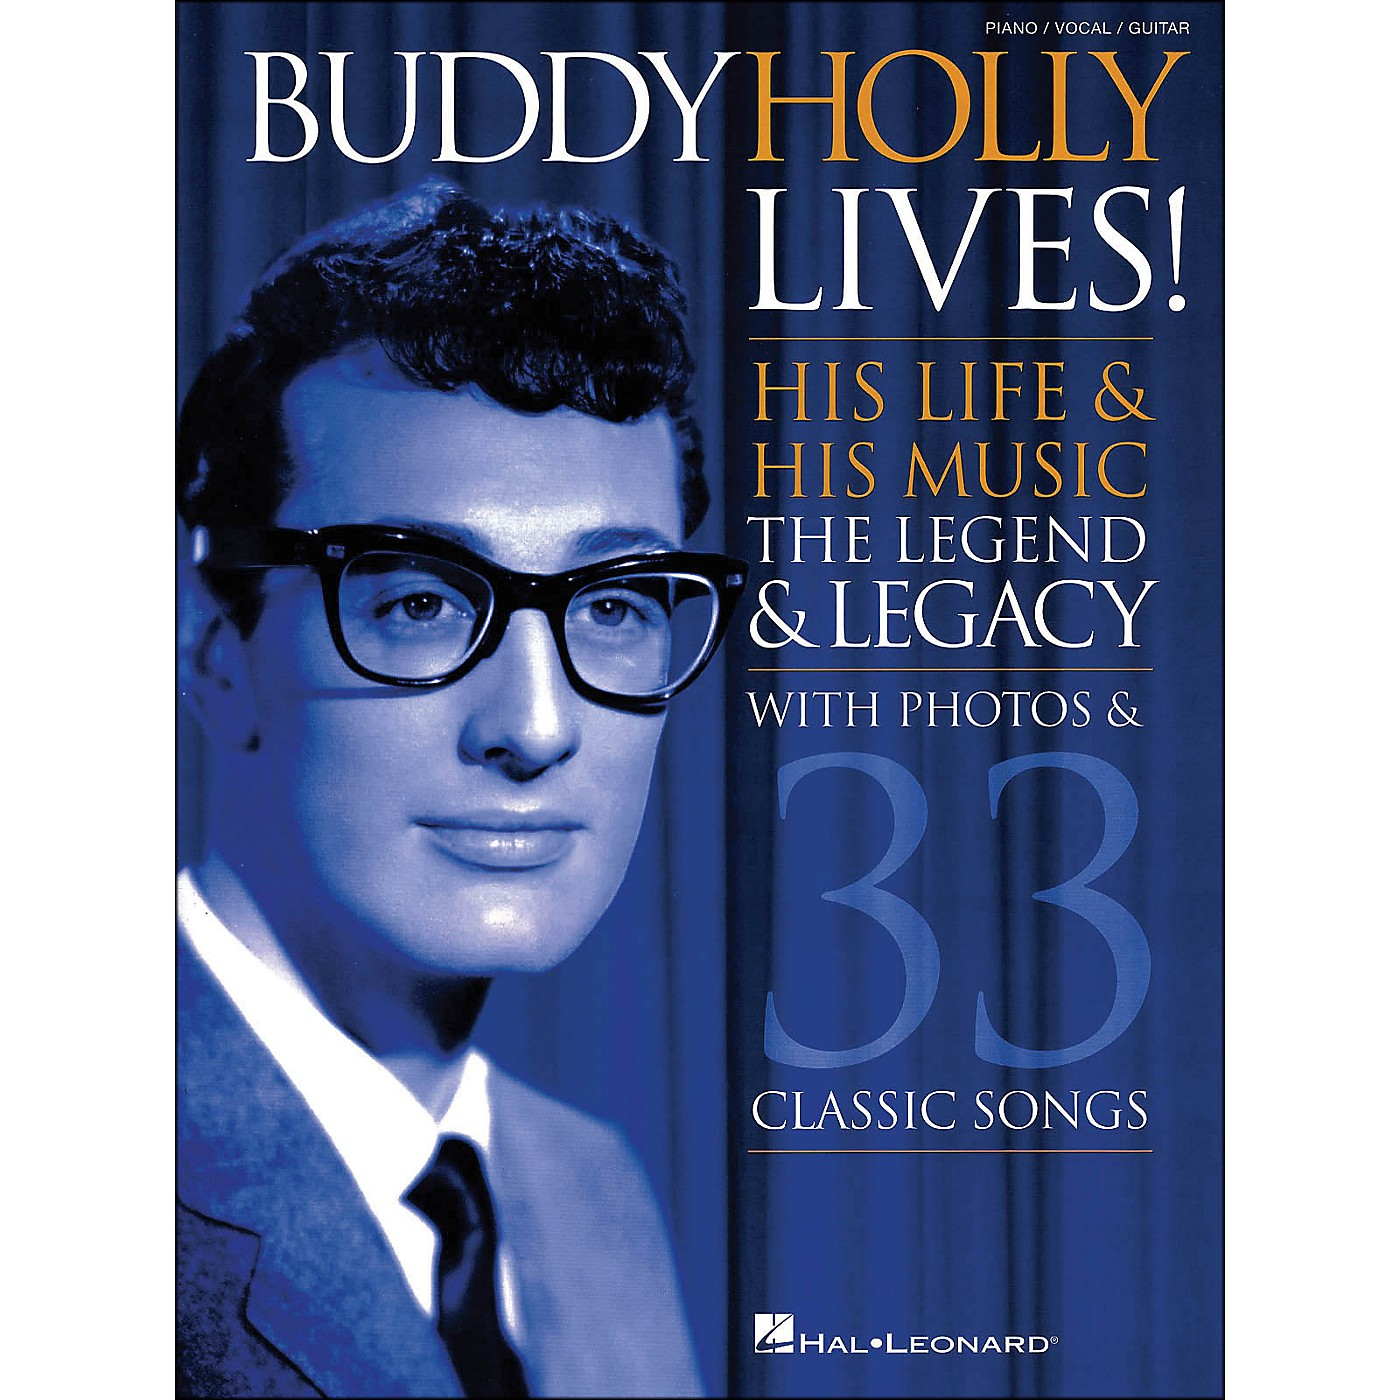 Hal Leonard Buddy Holly Lives! His Life & His Music - with Photos & 33 Classic Songs arranged for piano, vocal, and guitar (P/V/G) thumbnail